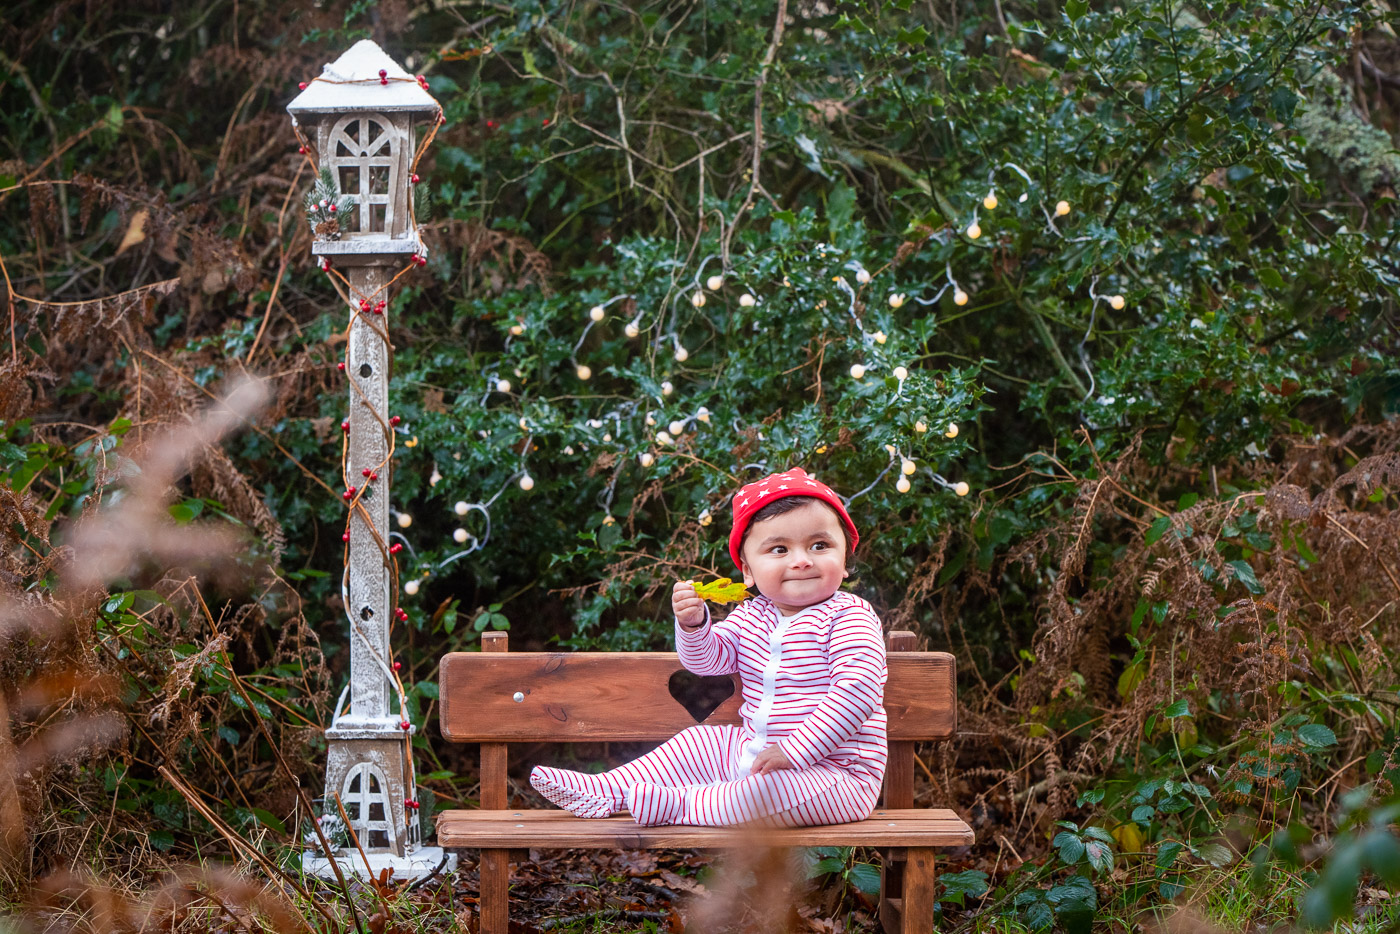 Christmas photography of a young girl in festive clothes, sitting on the rustic wooden bench next to magical scenery and lampost